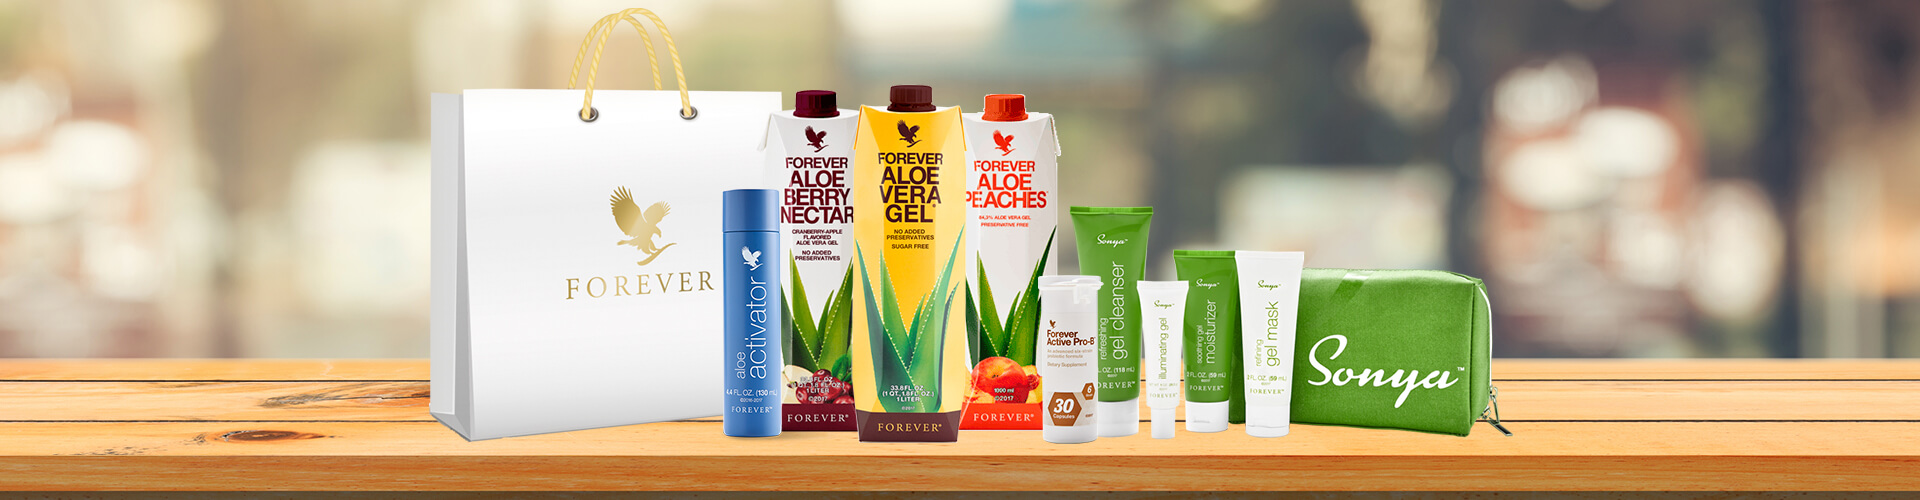 Forever Living New Products - Aloe Cache